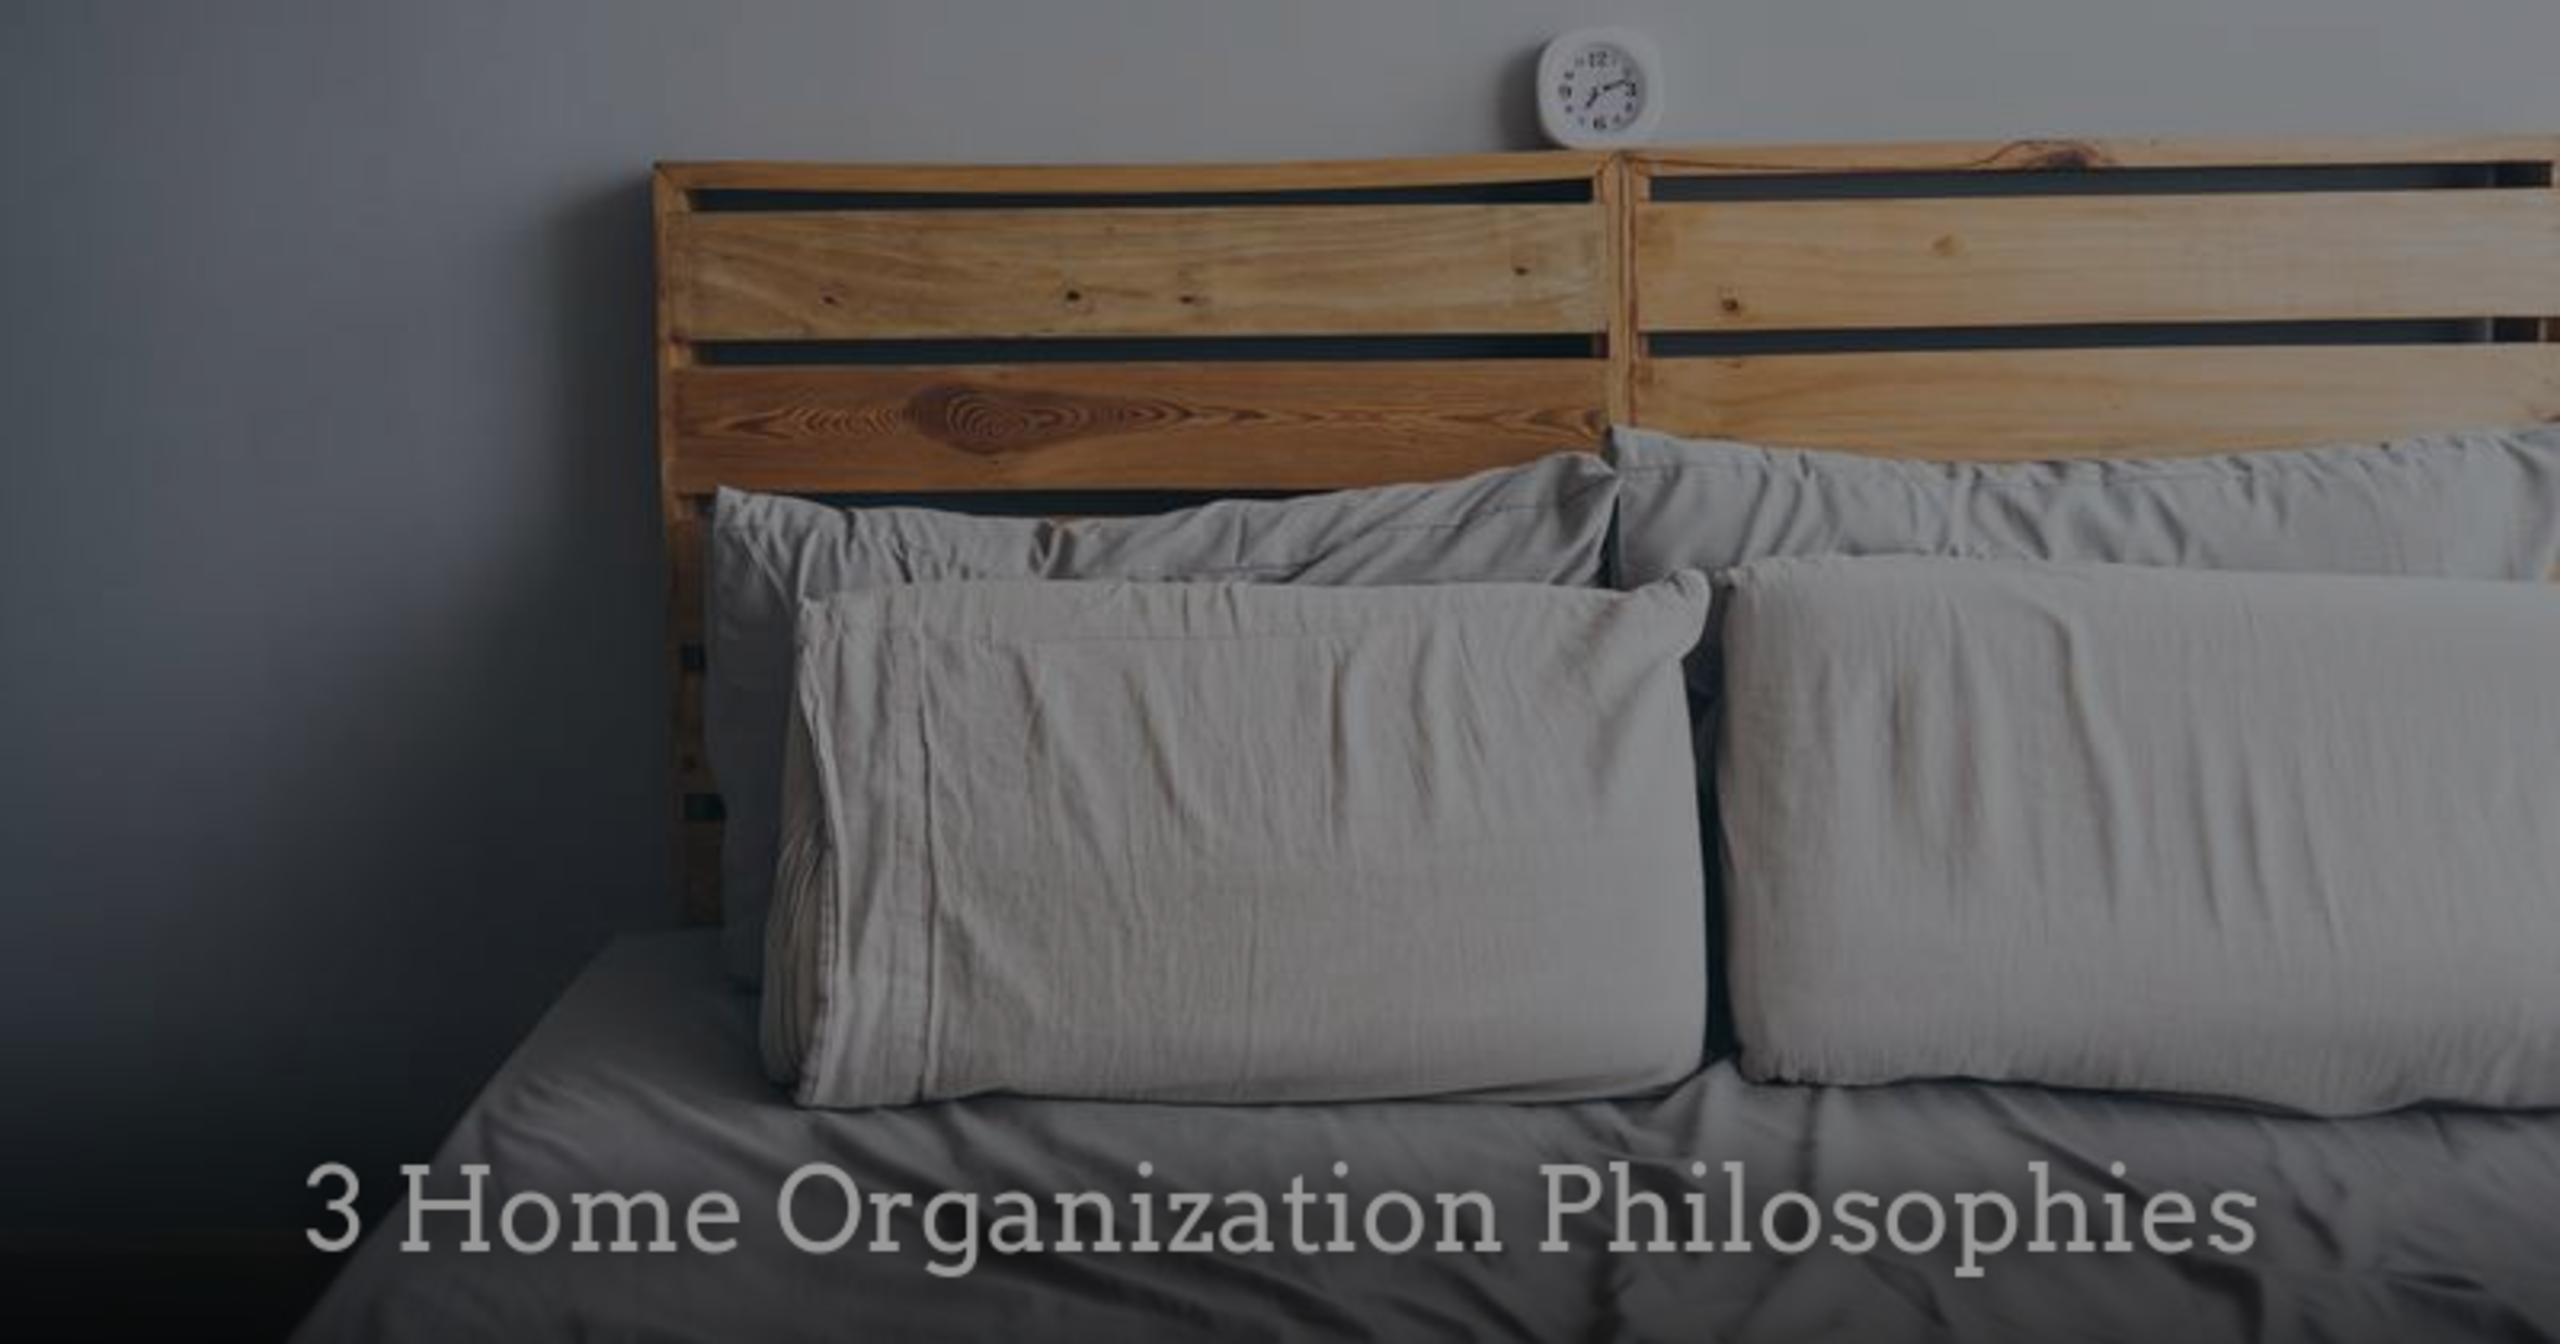 3 Home Organization Philosophies